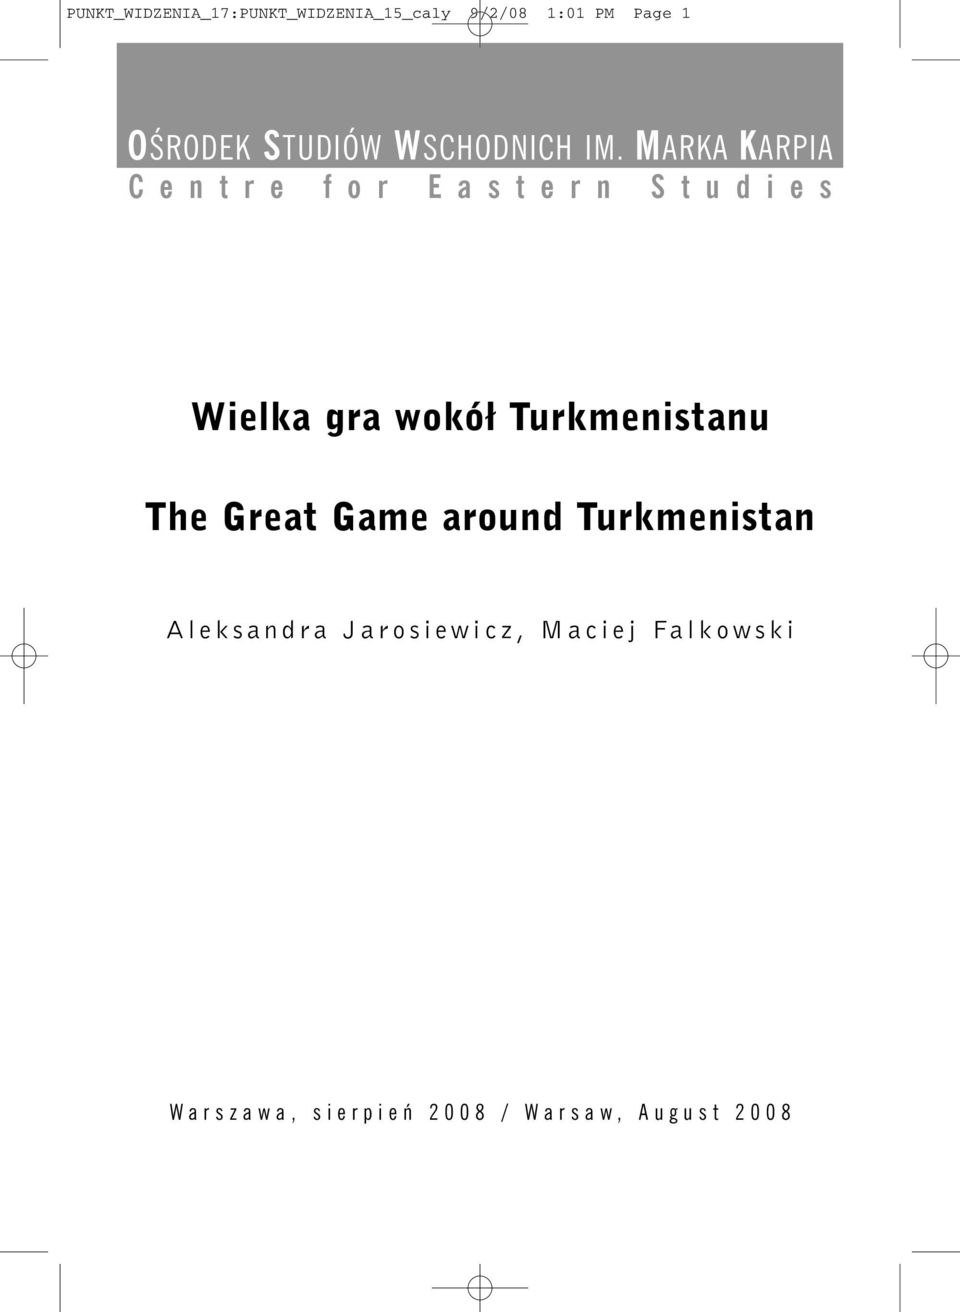 Turkmenistanu The Great Game around Turkmenistan A l e k s a n d r a J a r o s i e w i c z,